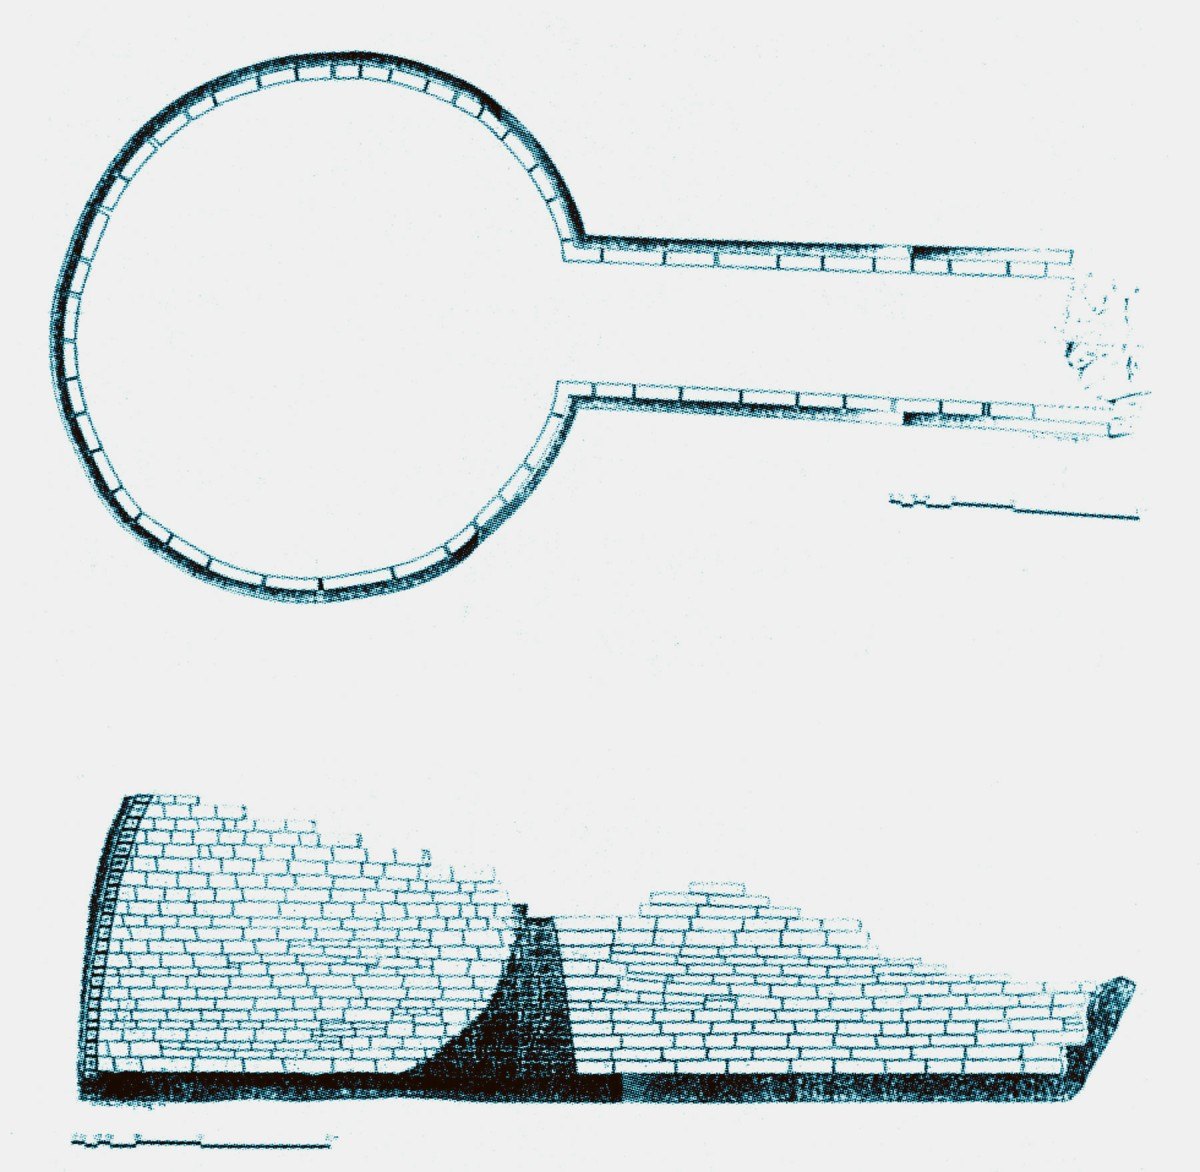 Fig. 3. Groundplan and section of the tholos tomb at Kiperi in Parga. (Source: Th. Papadopoulos)